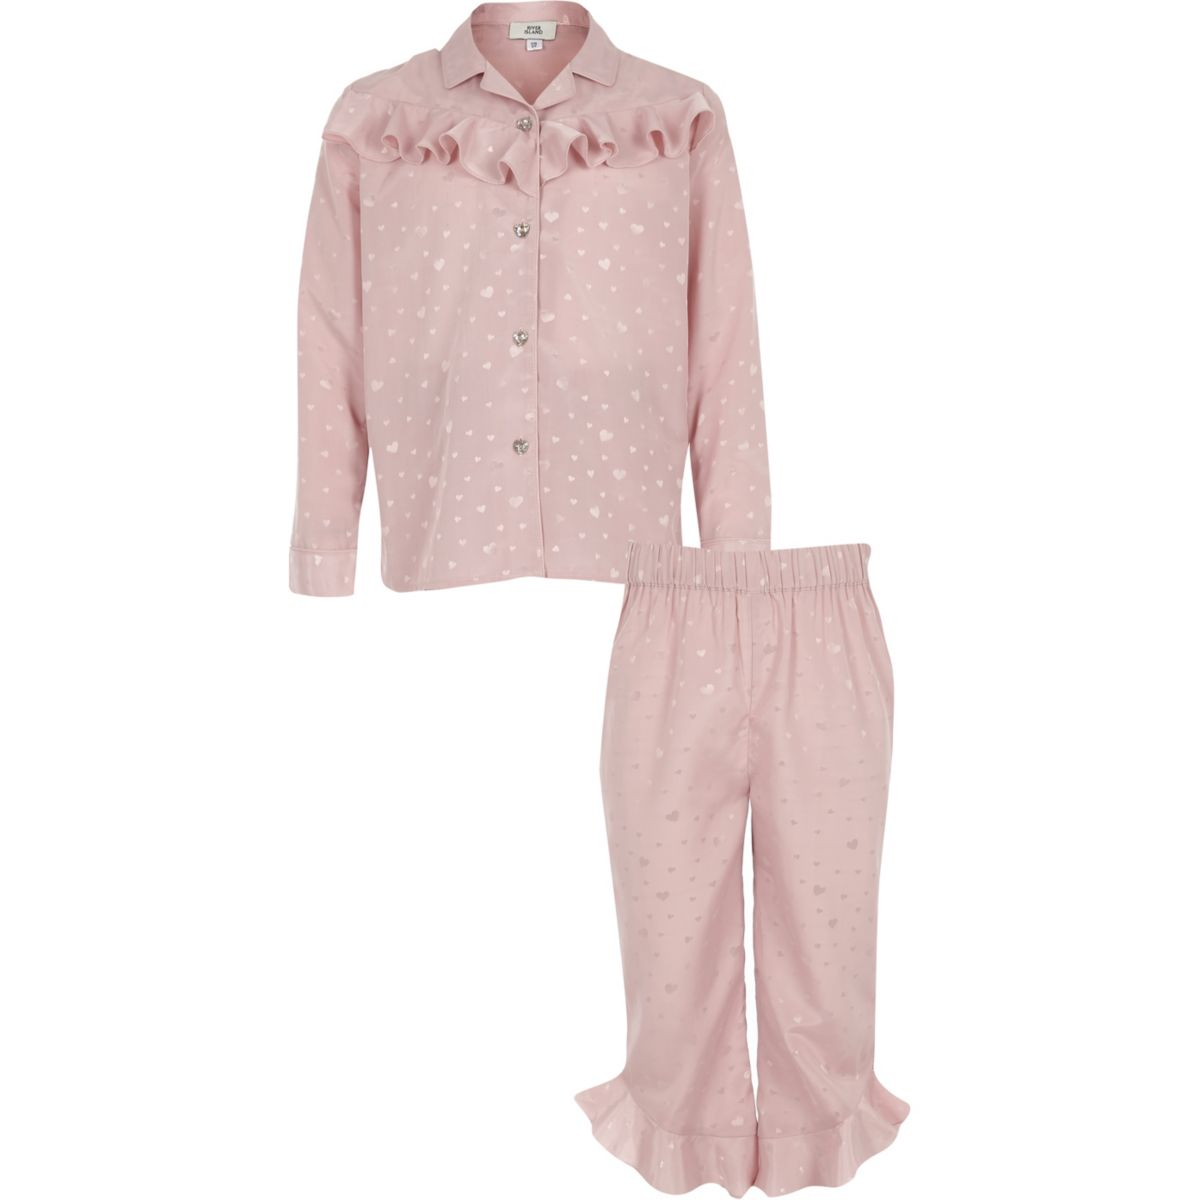 Girls pink heart satin ruffle pajama set